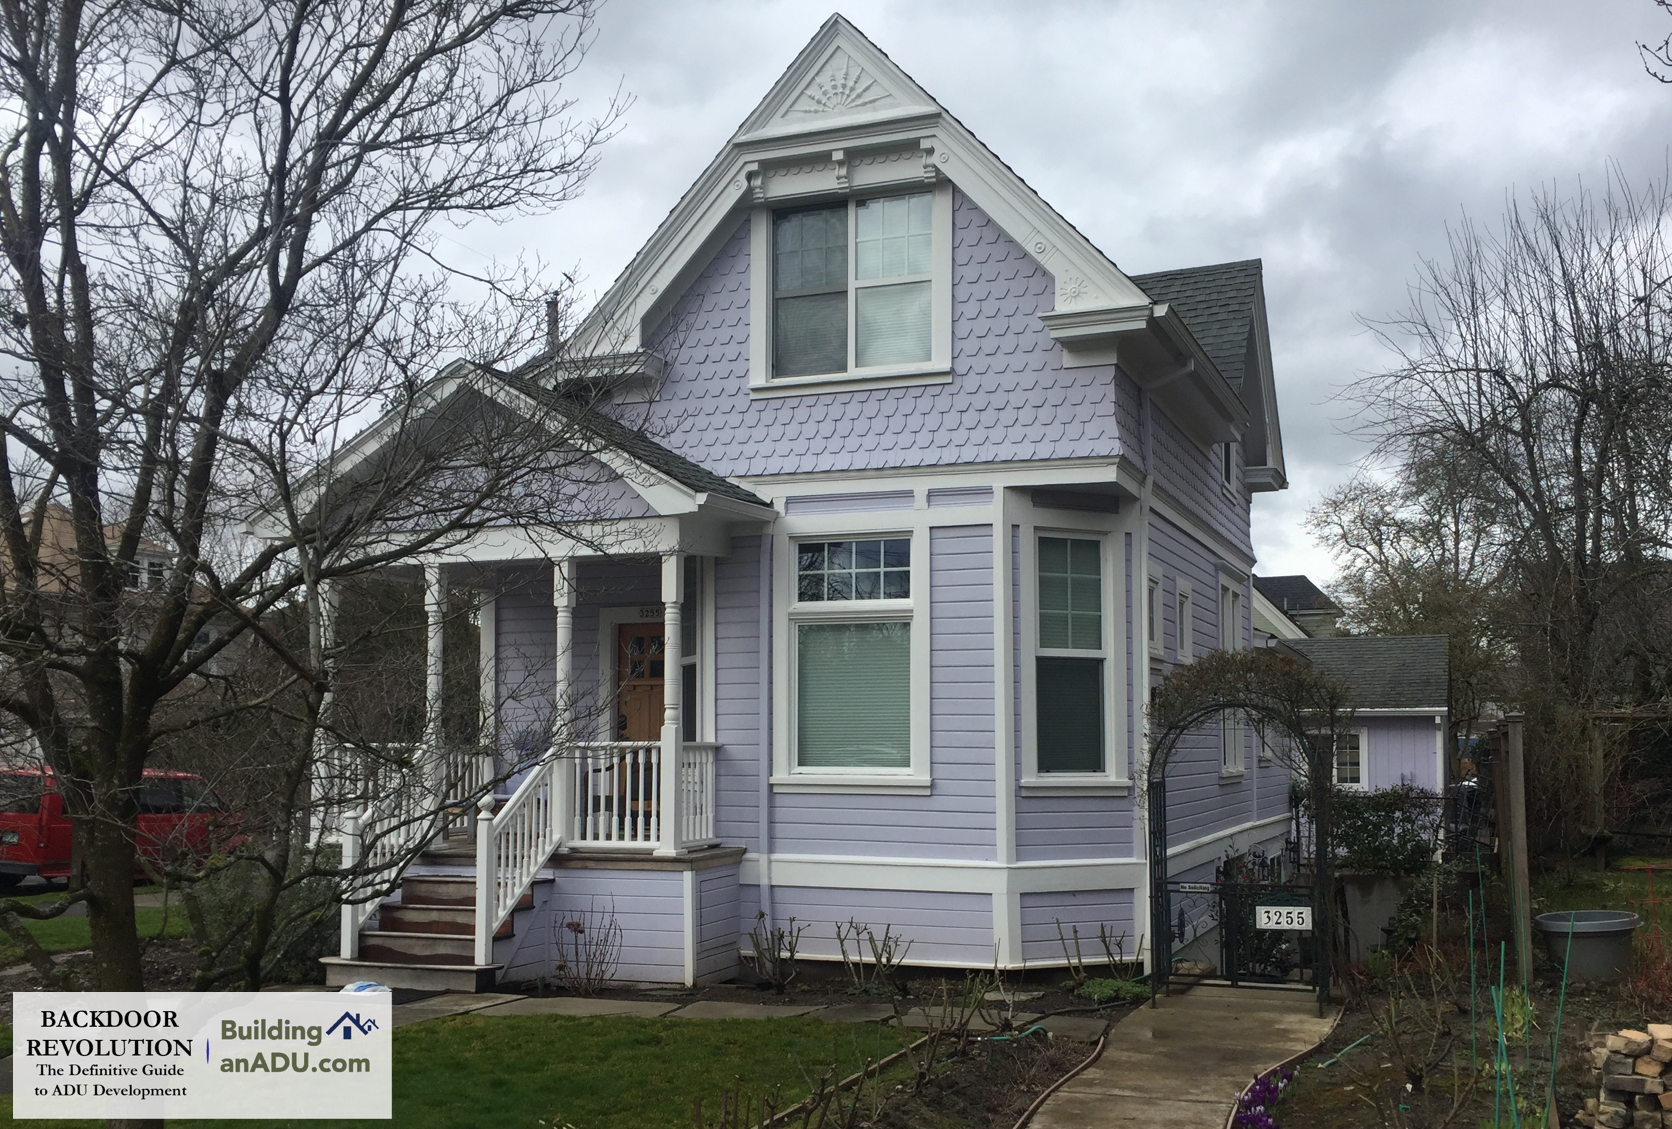 A charming victorian home with a basement ADU, whose entry is discretely tucked away on the right side of the house.